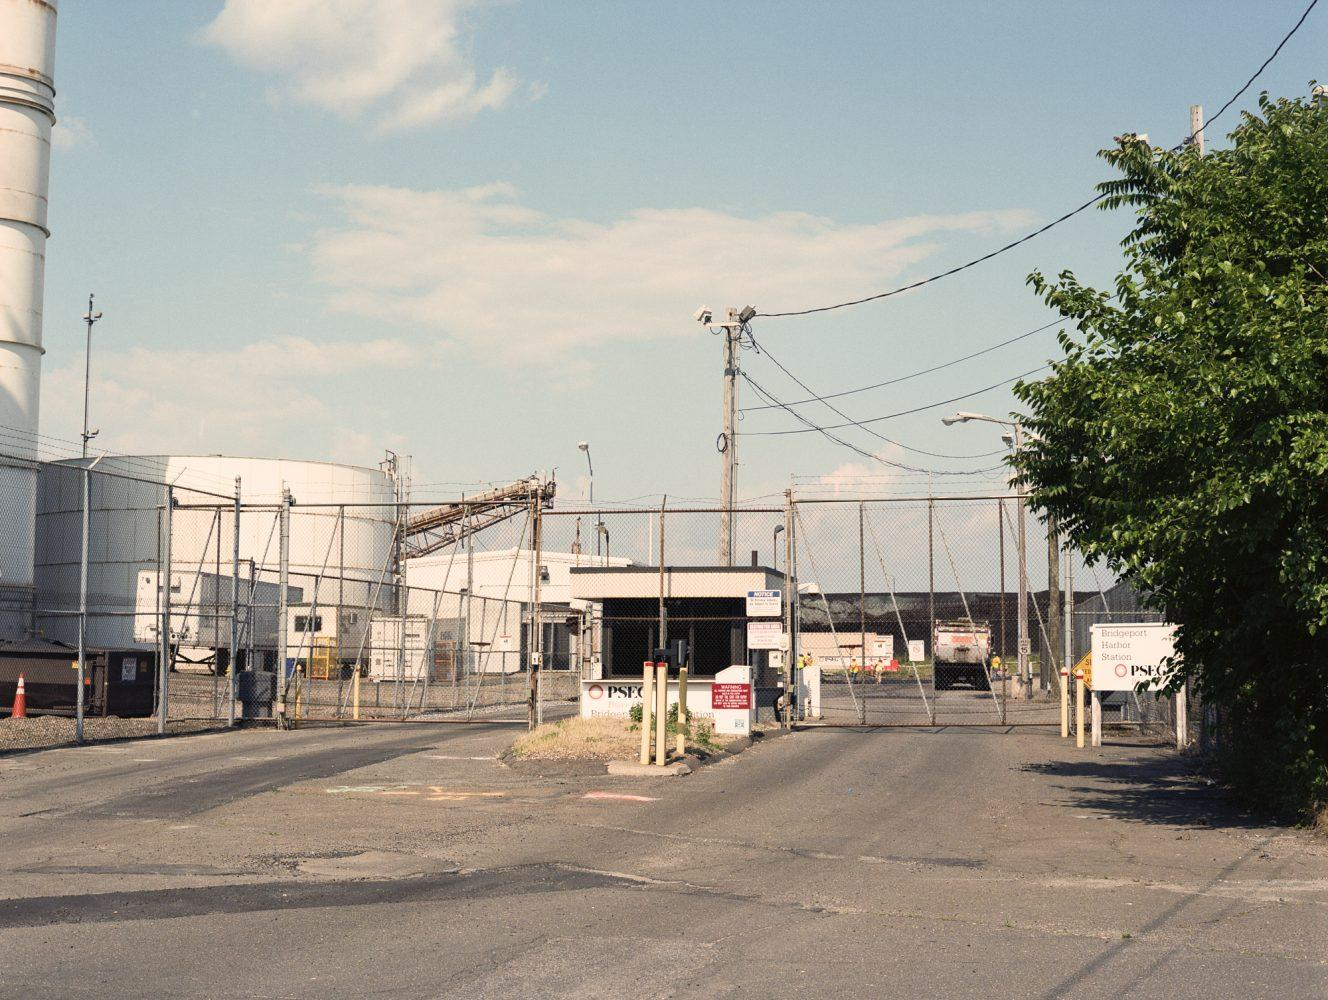 Entrance to the PSEG power plant in Bridgeport, Conn. The plant is surrounded by barbed wire fencing.